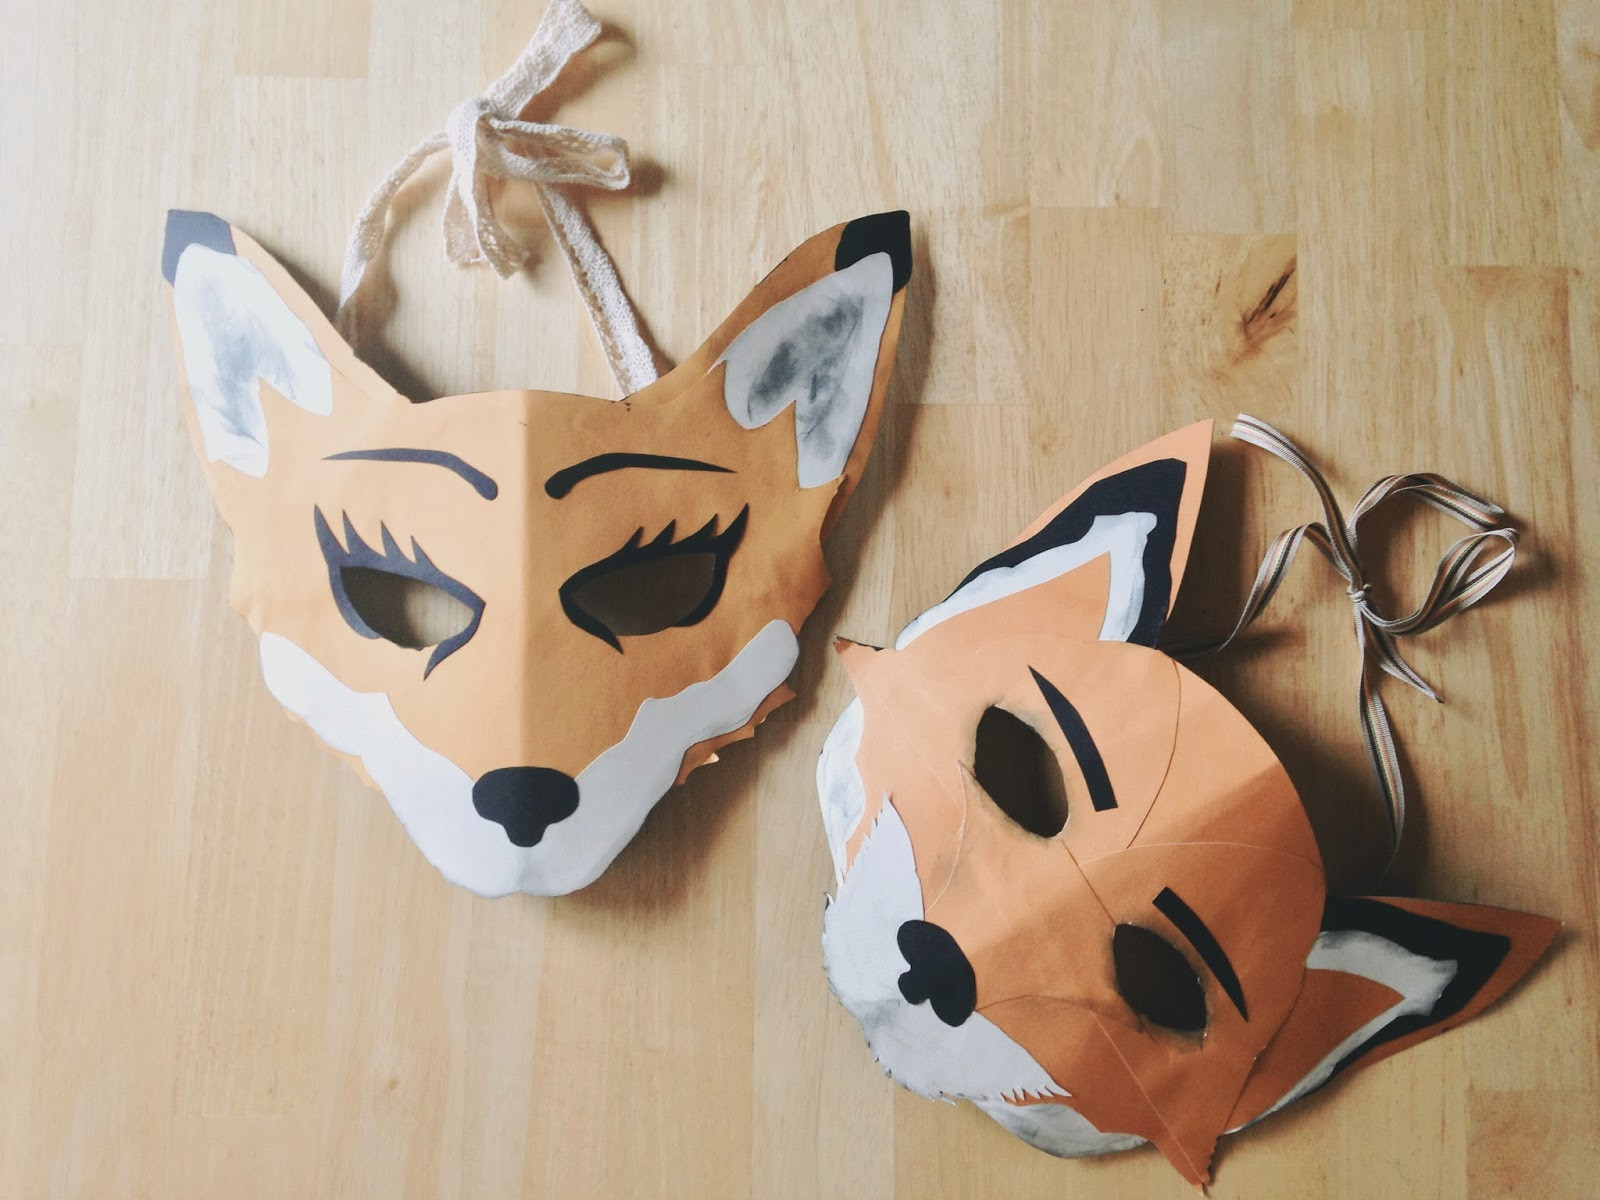 Best ideas about DIY Fox Mask . Save or Pin oh whimsical me A Few Last Minute Costume Ideas Now.